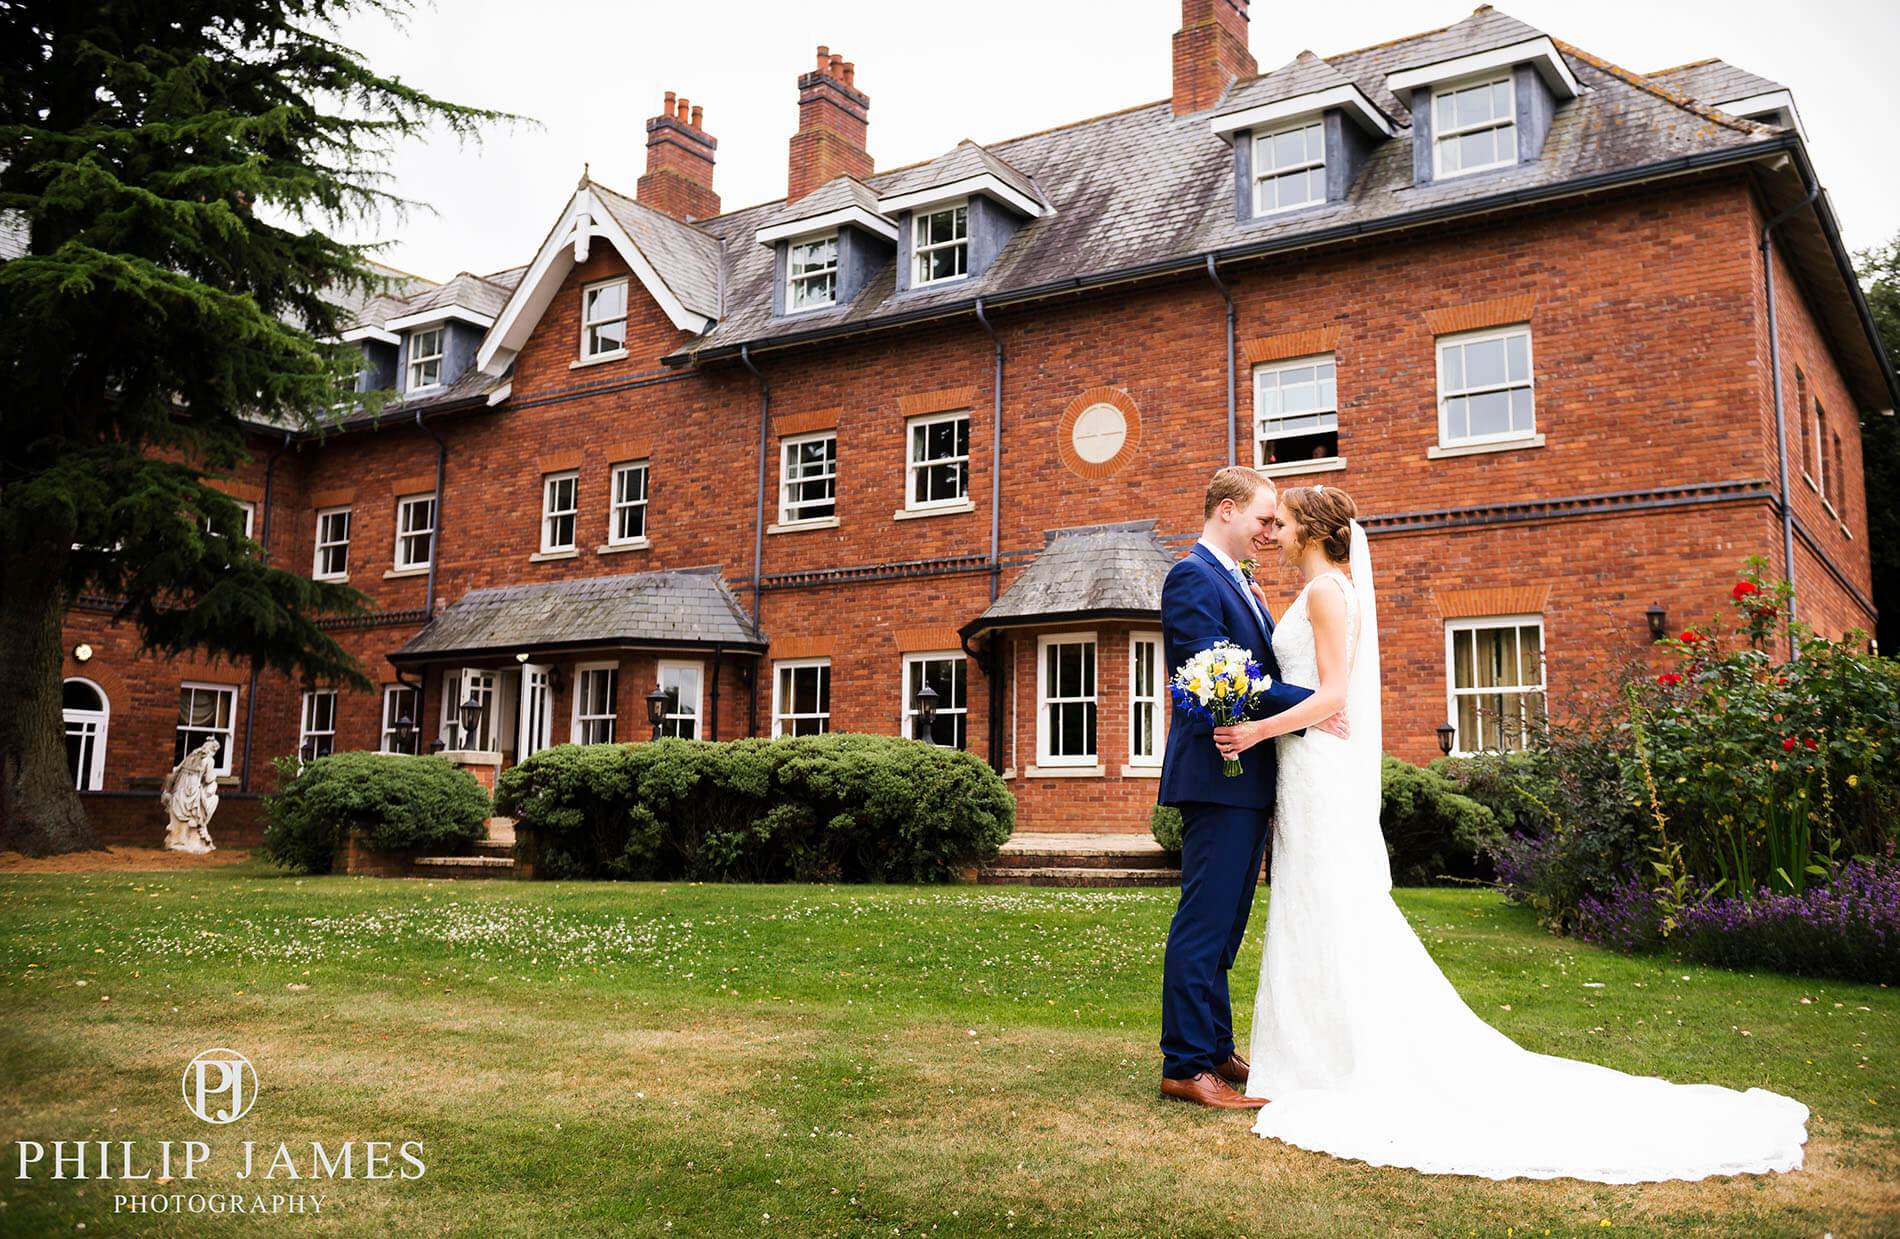 Philip James specializing in Wedding Photography Birmingham - Moments (118 of 170)